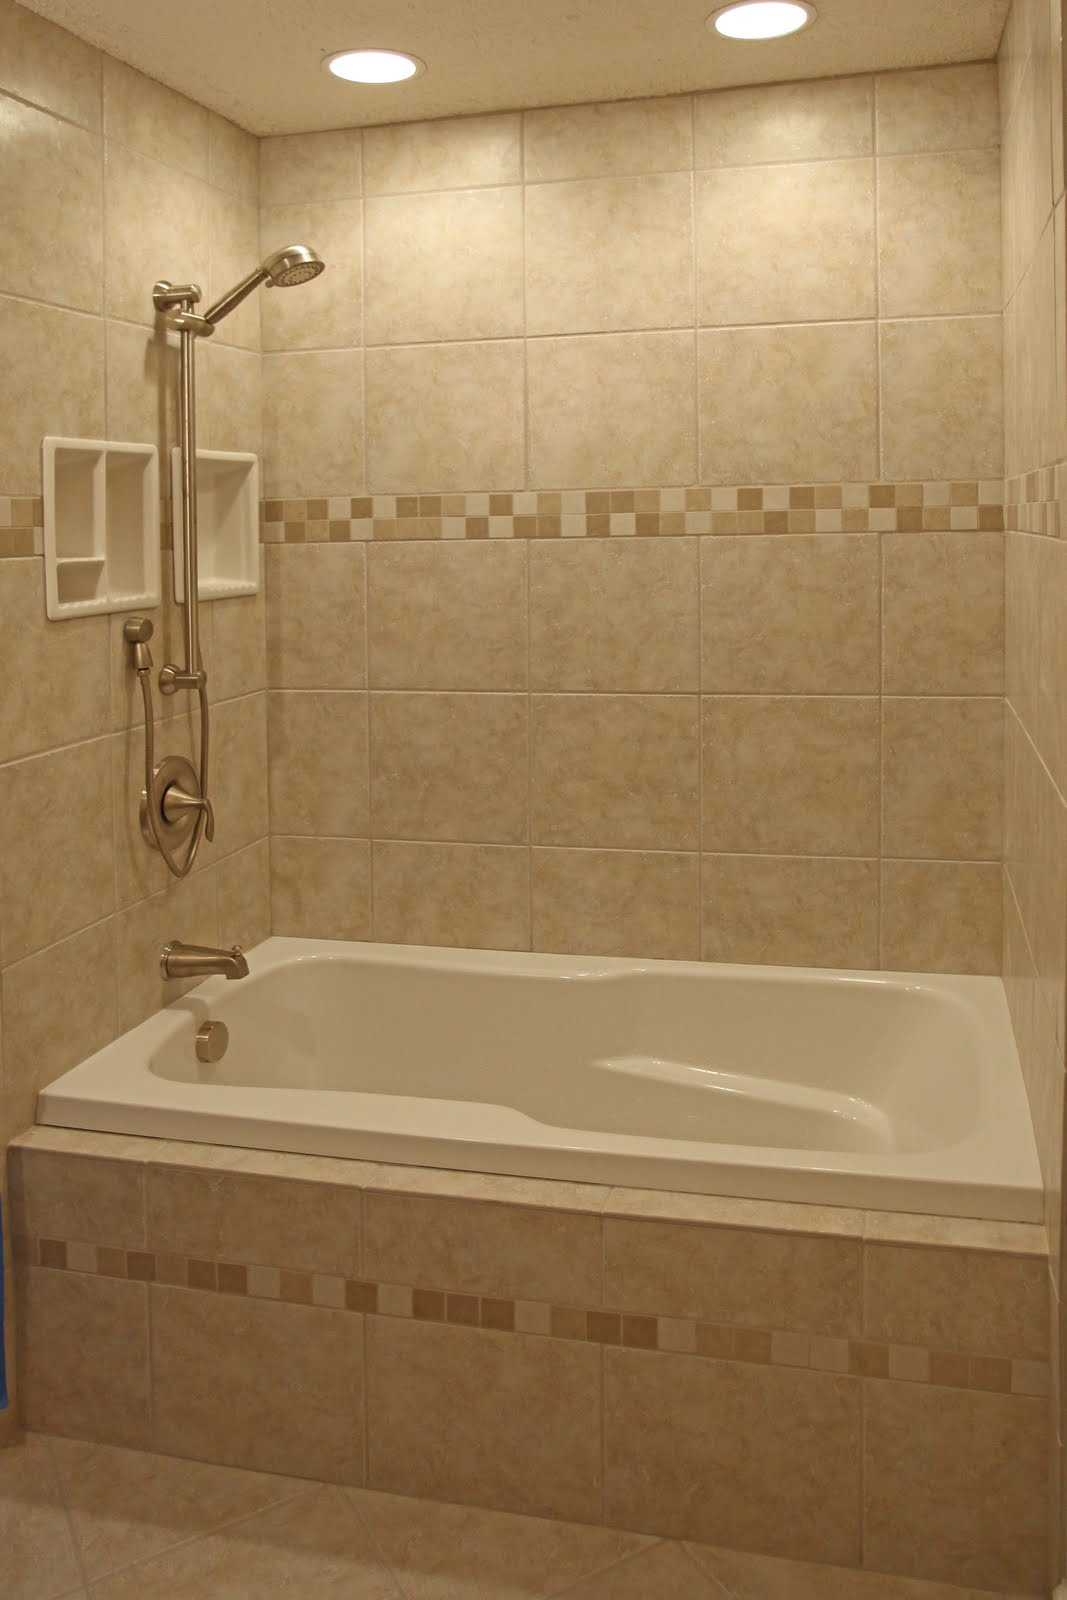 Bathroom remodeling design ideas tile shower niches for Images of bathroom tile ideas